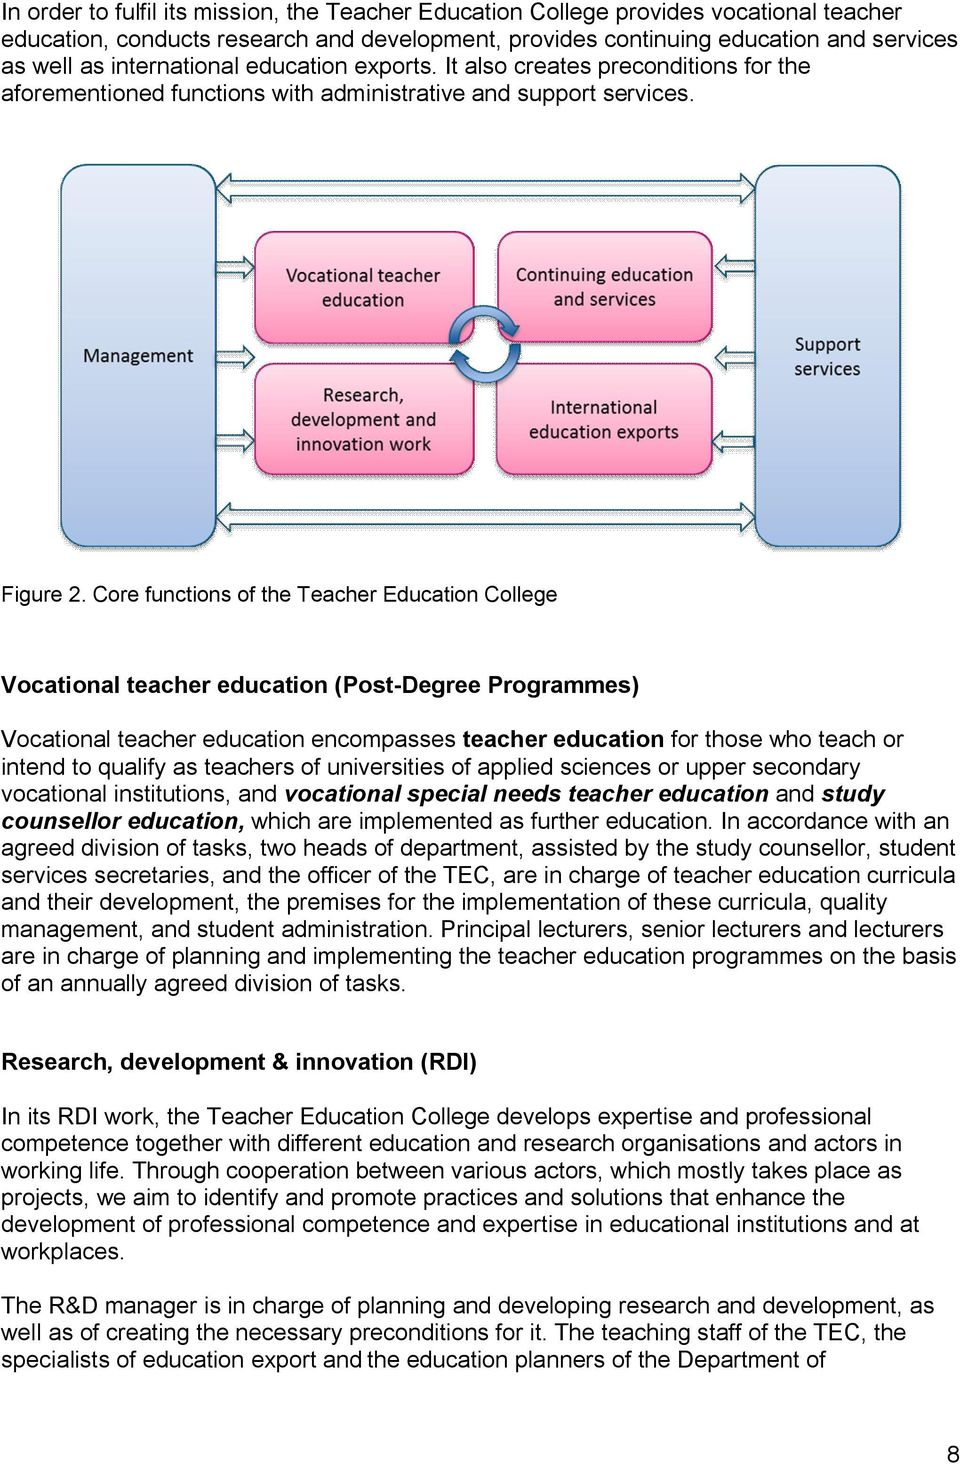 Core functions of the Teacher Education College Vocational teacher education (Post-Degree Programmes) Vocational teacher education encompasses teacher education for those who teach or intend to